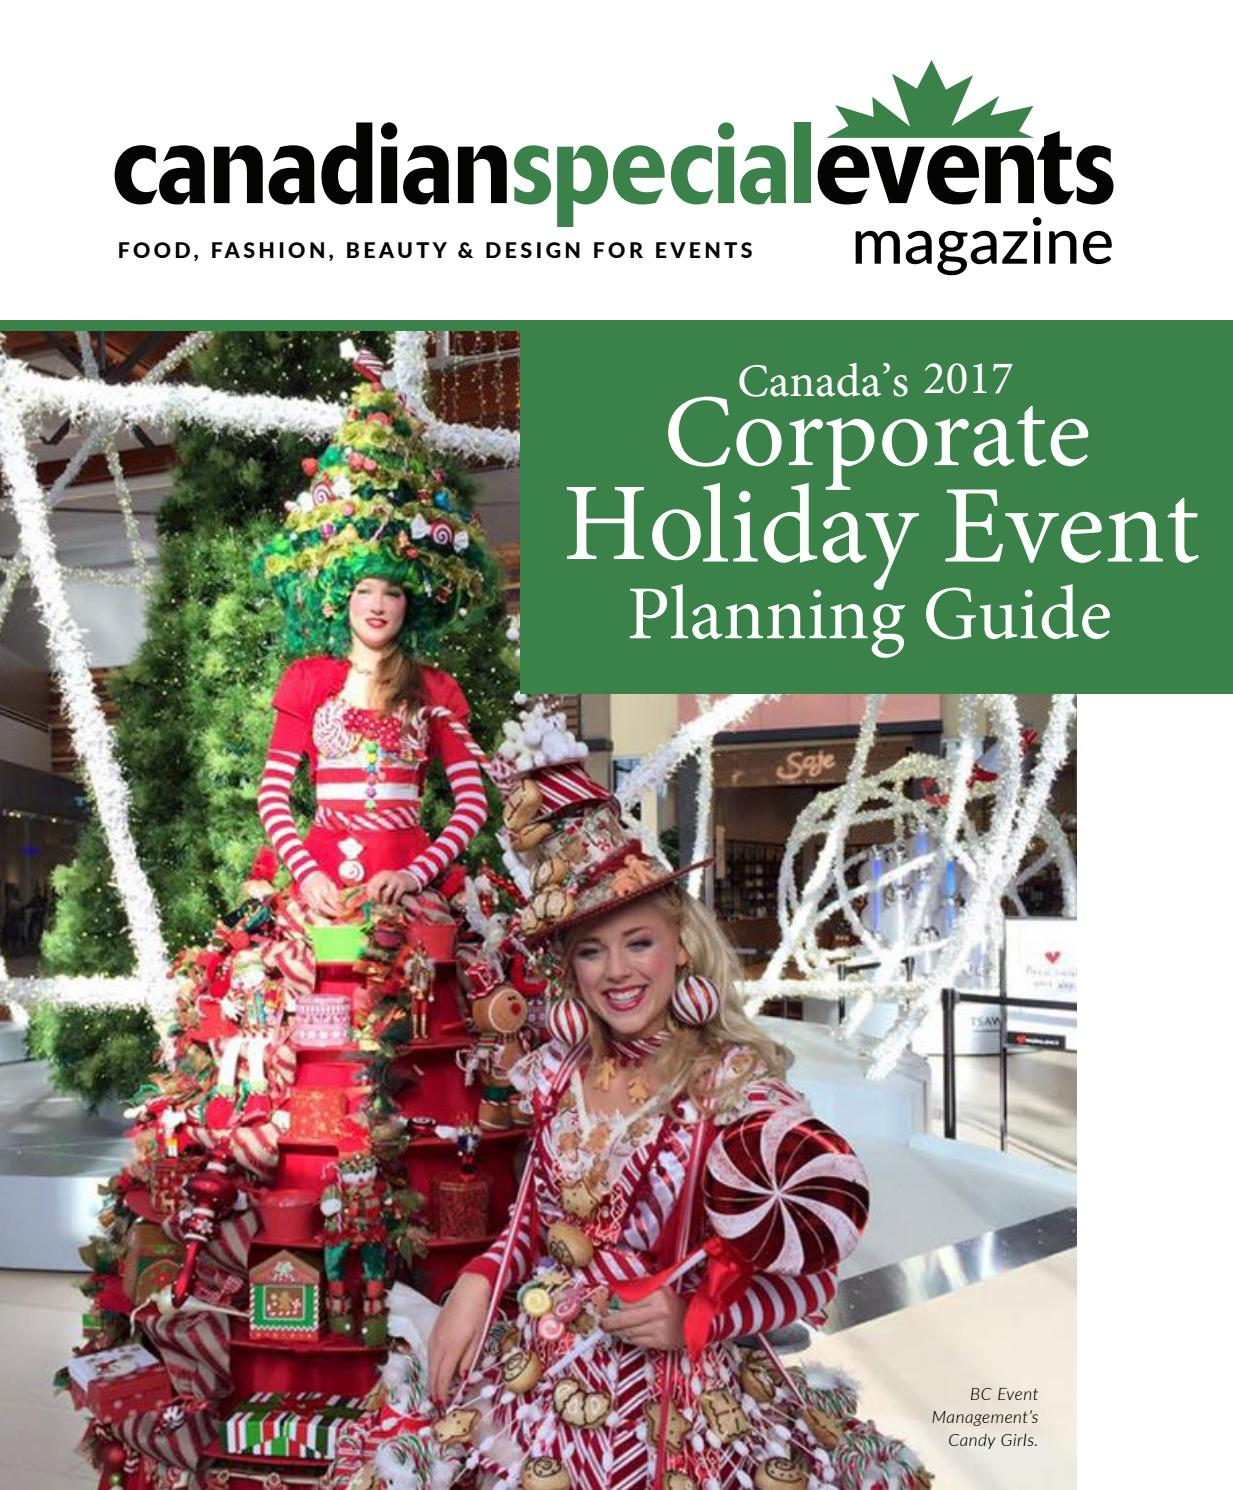 265ccb5cb176 Canadian Special Events Corporate Holiday Planning Guide by Canadian ...